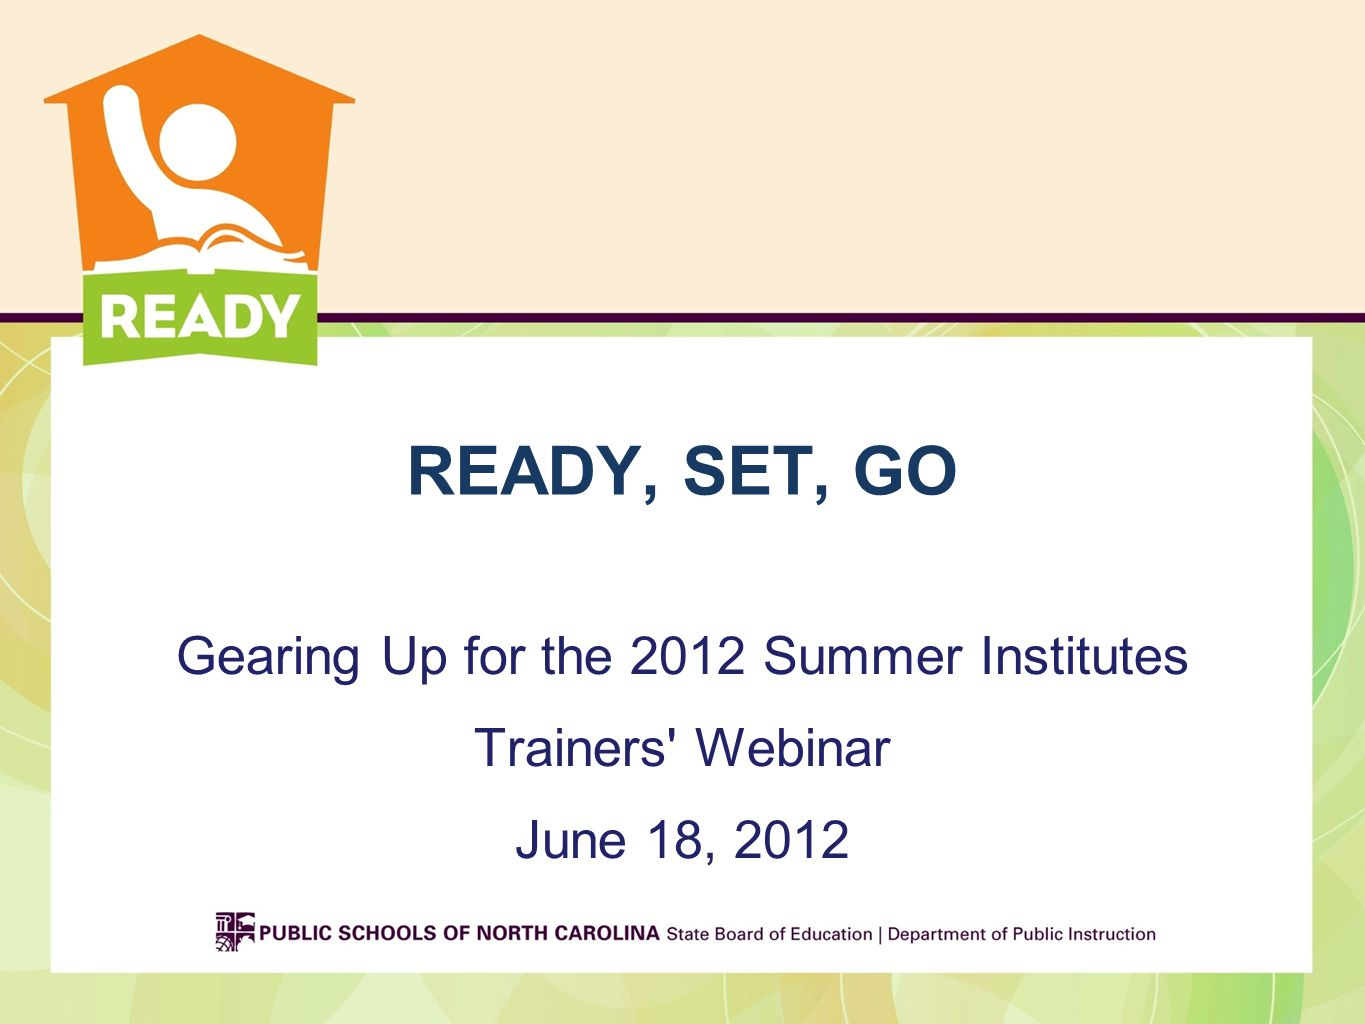 READY, SET, GO Gearing Up for the 2012 Summer Institutes Trainers Webinar June 18, 2012